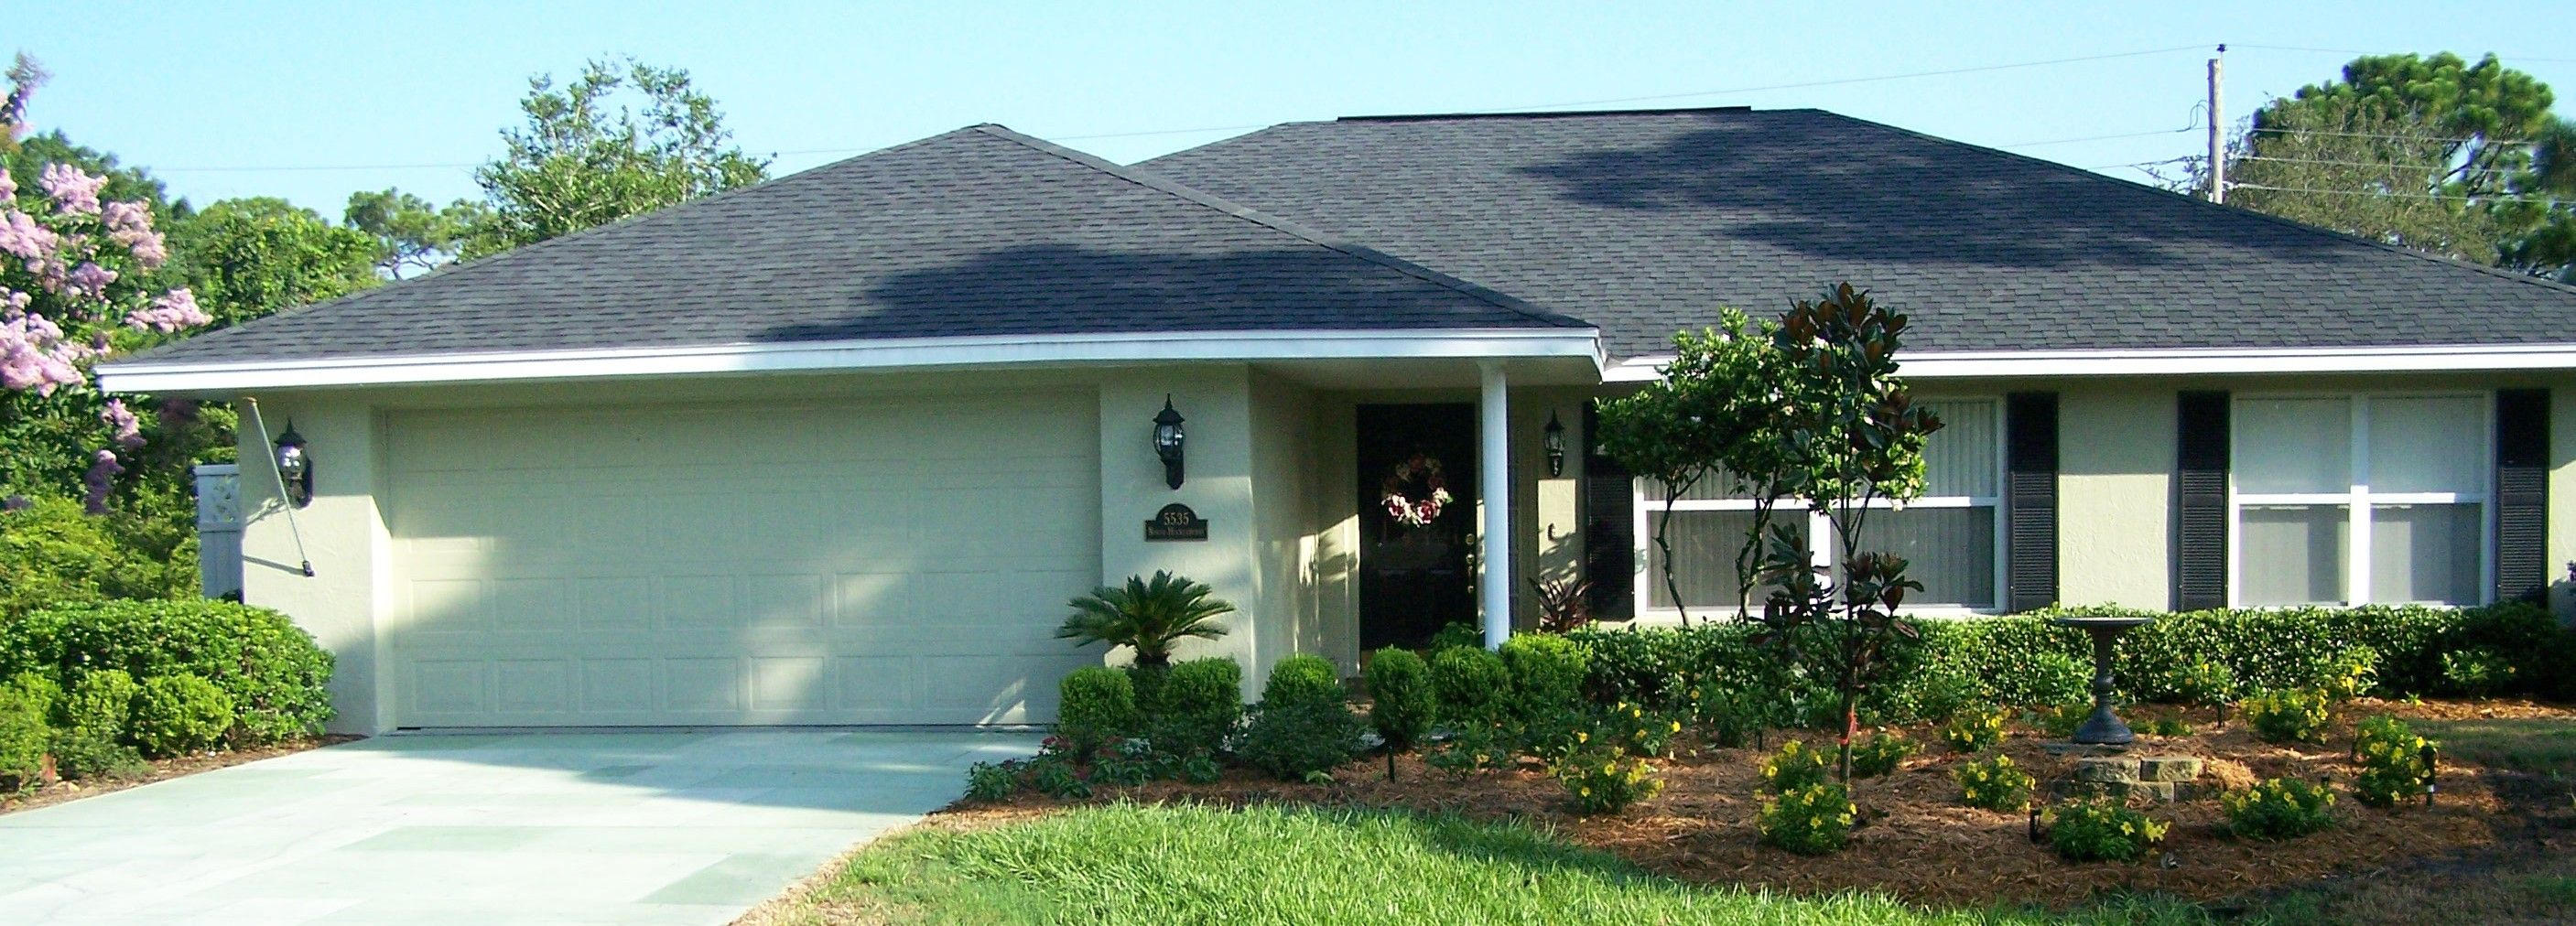 Exterior house color schemes with black shutters - Exterior House Color Schemes With Black Shutters